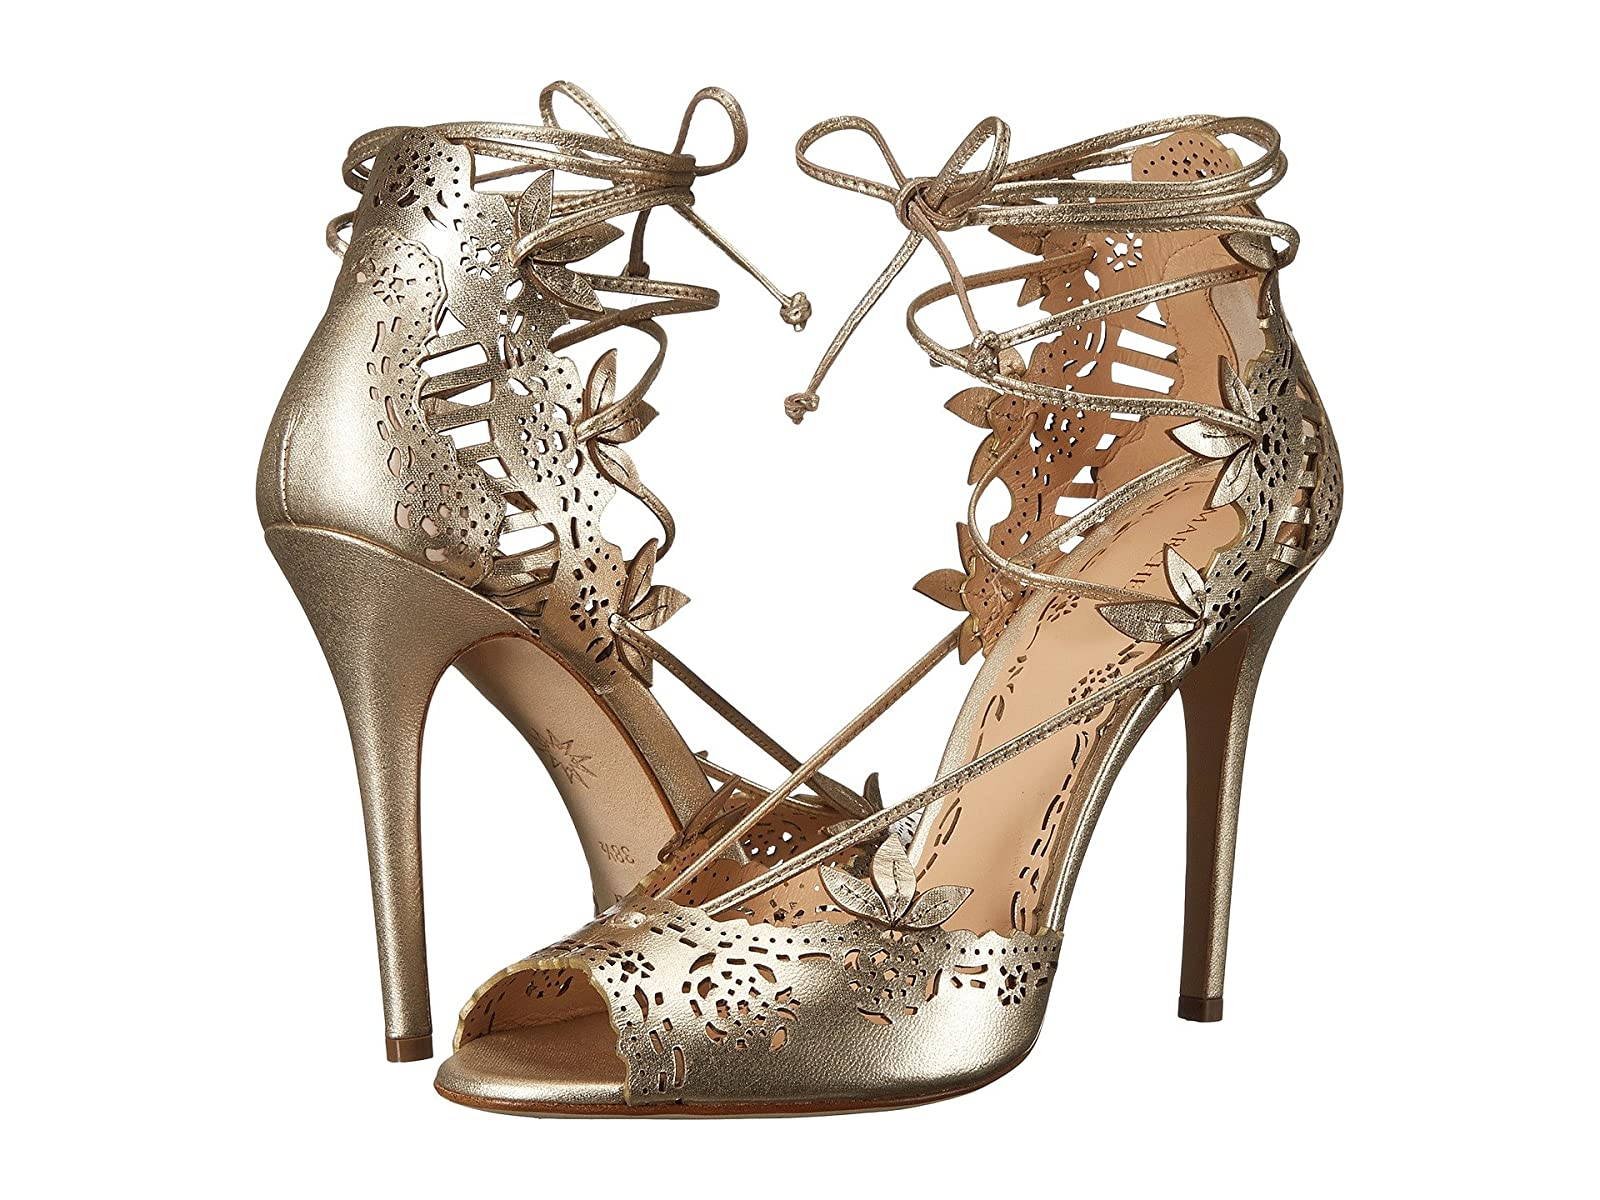 Marchesa ClaraCheap and distinctive eye-catching shoes